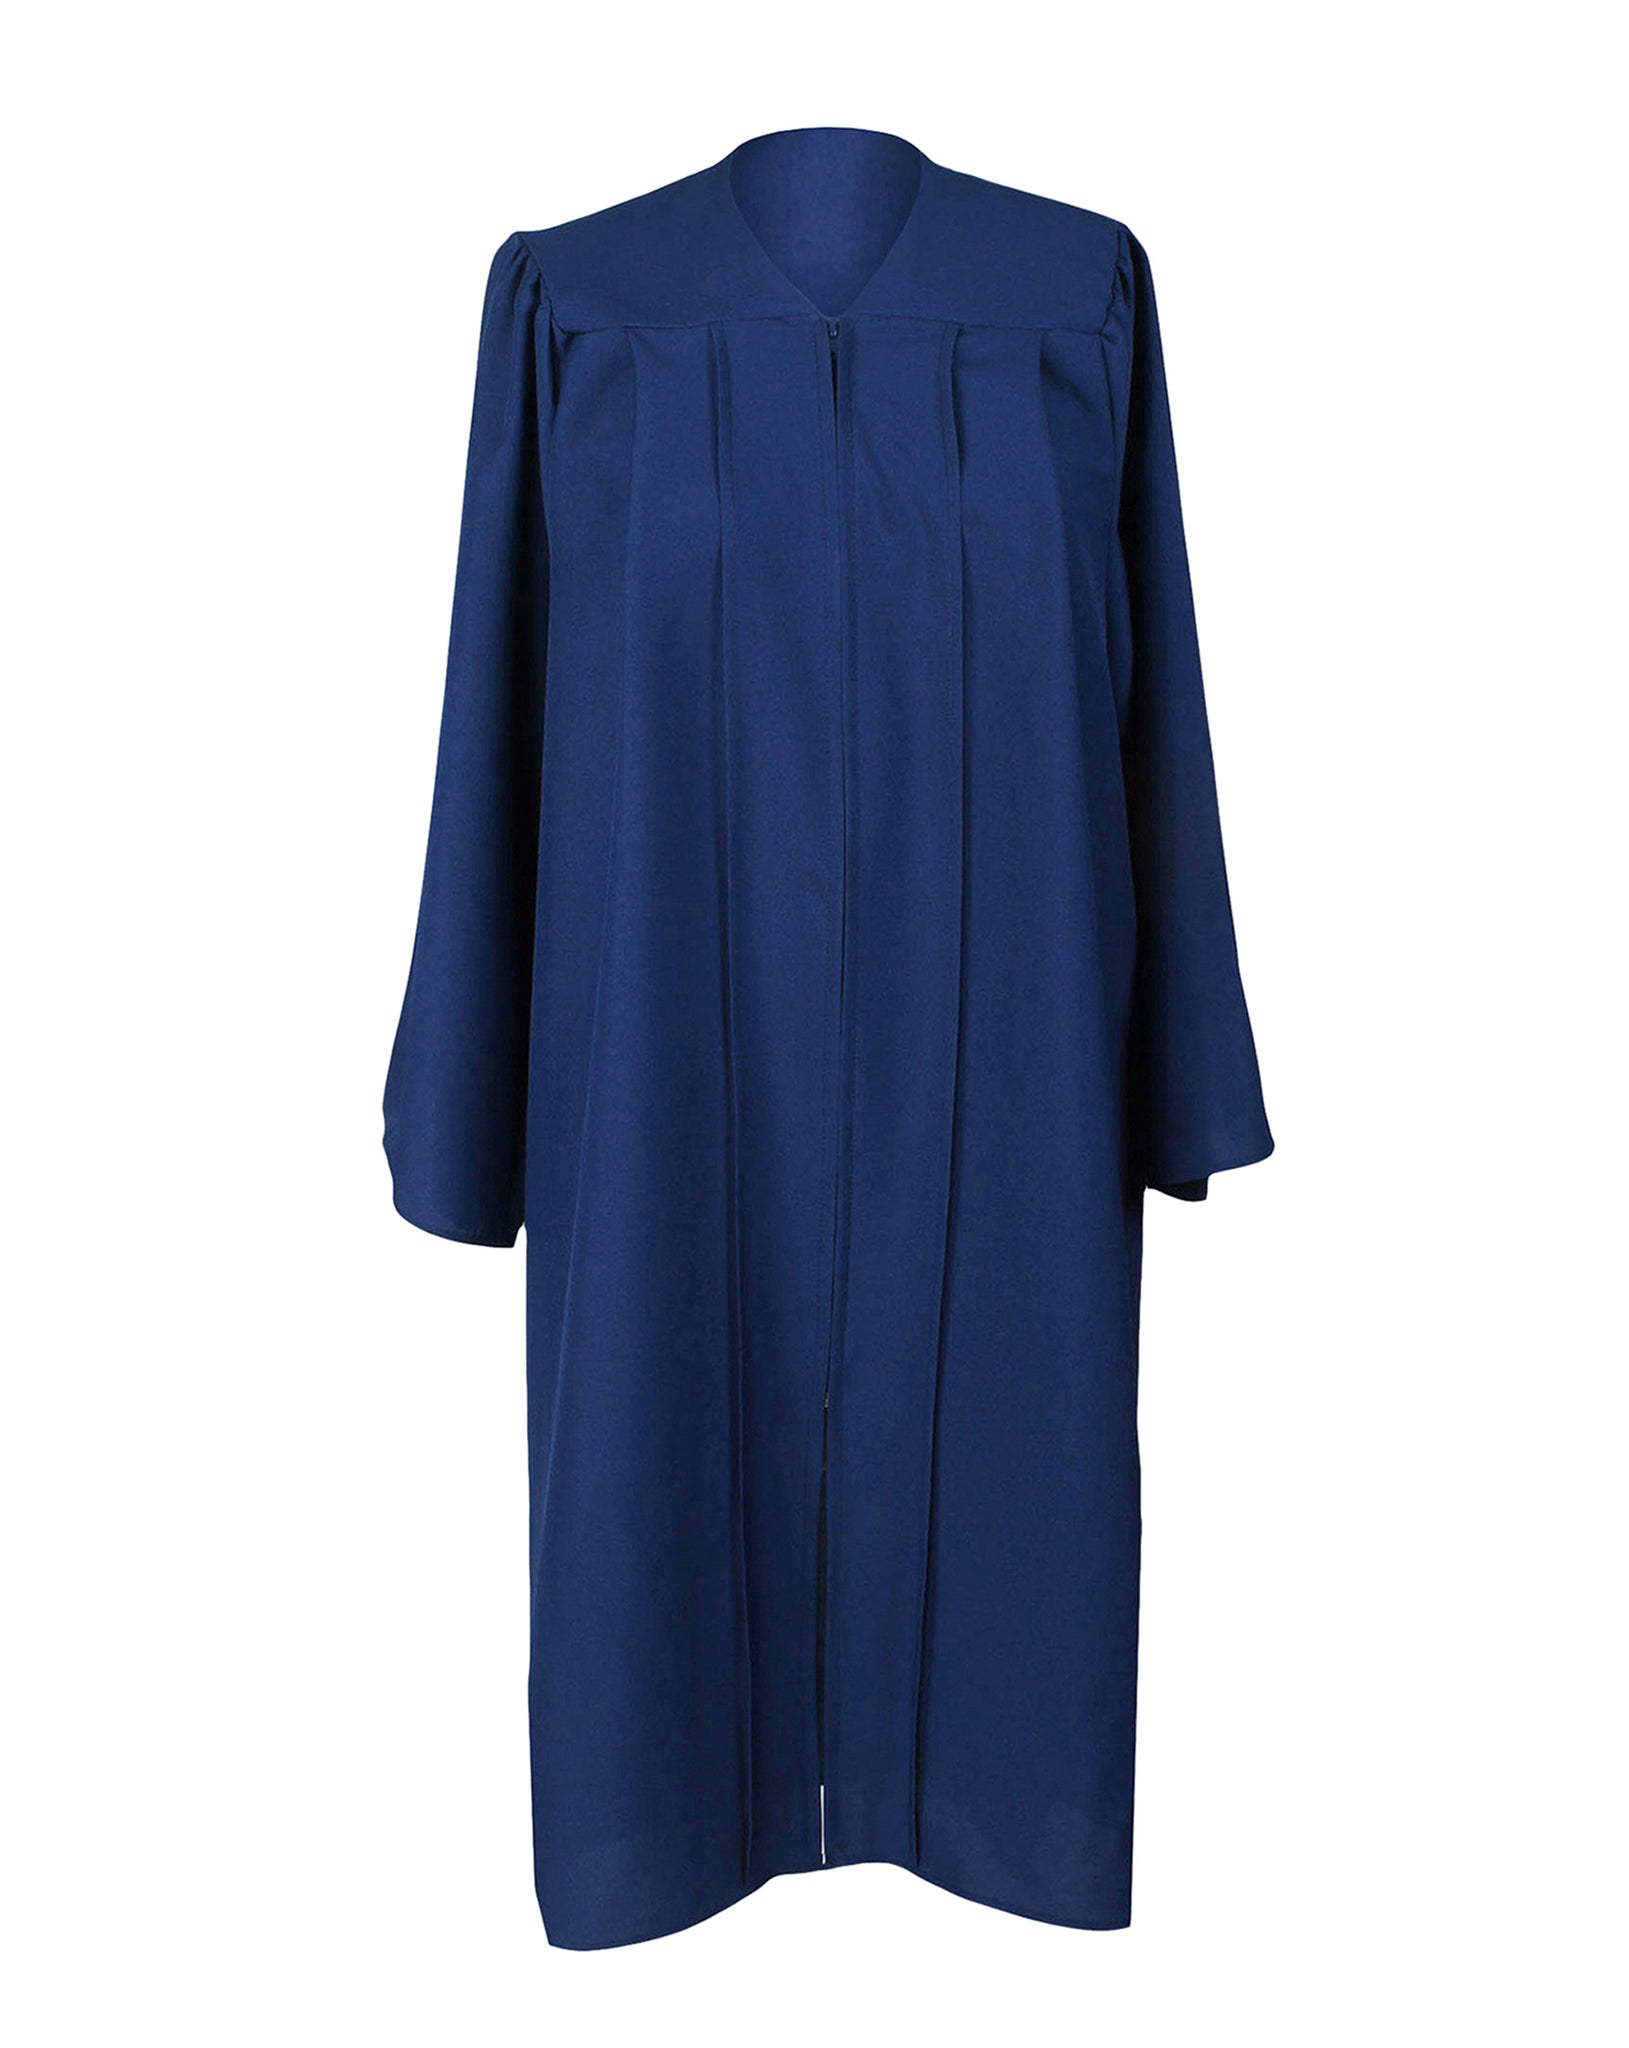 Unisex Adult Navy Blue Matte Graduation Gown Only Choir Robes,12 Colors Option